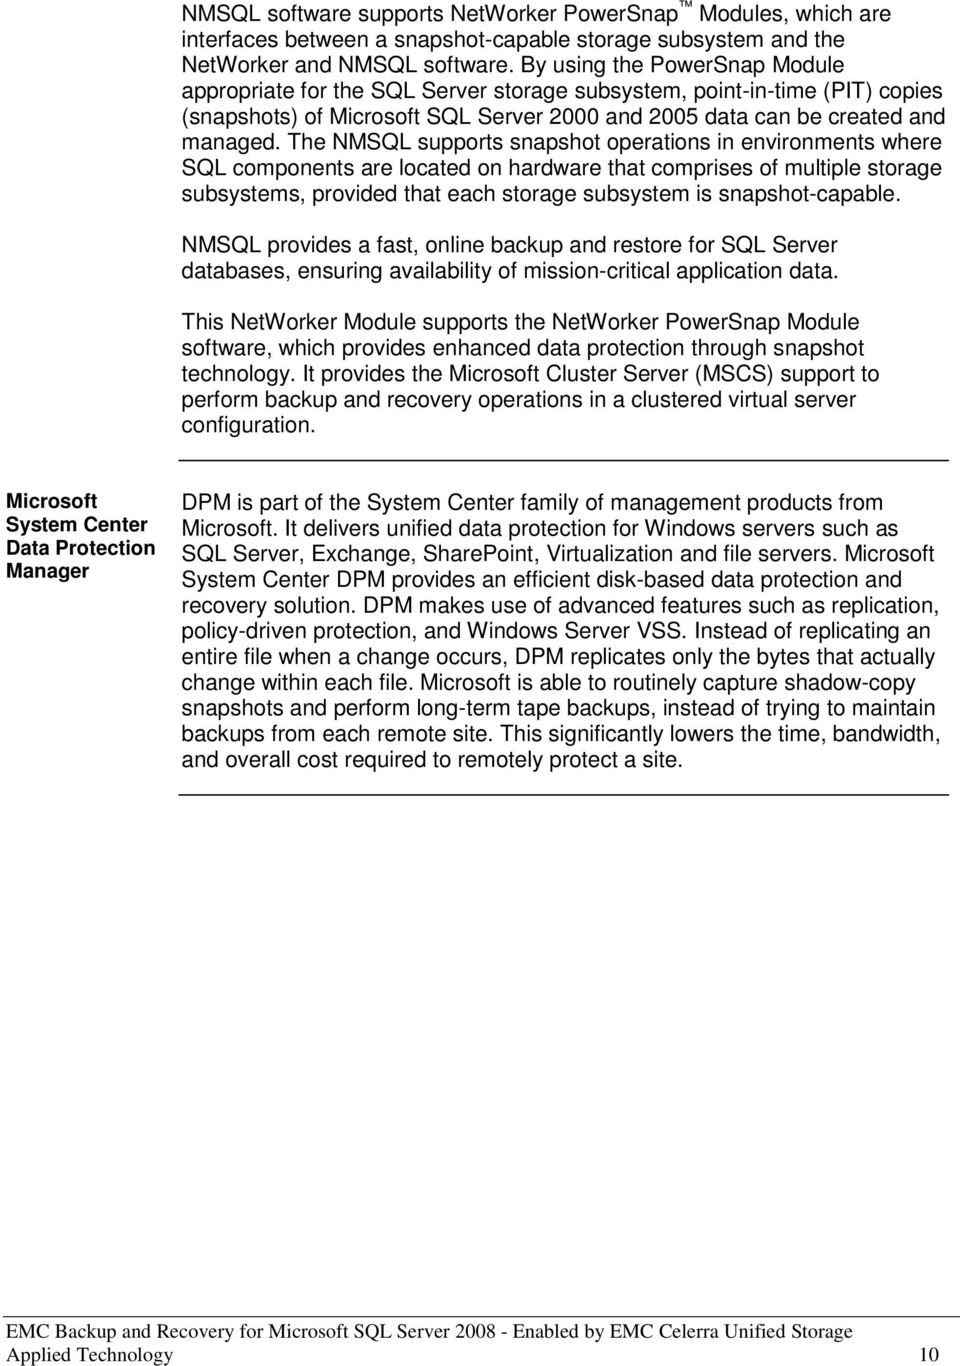 The NMSQL supports snapshot operations in environments where SQL components are located on hardware that comprises of multiple storage subsystems, provided that each storage subsystem is